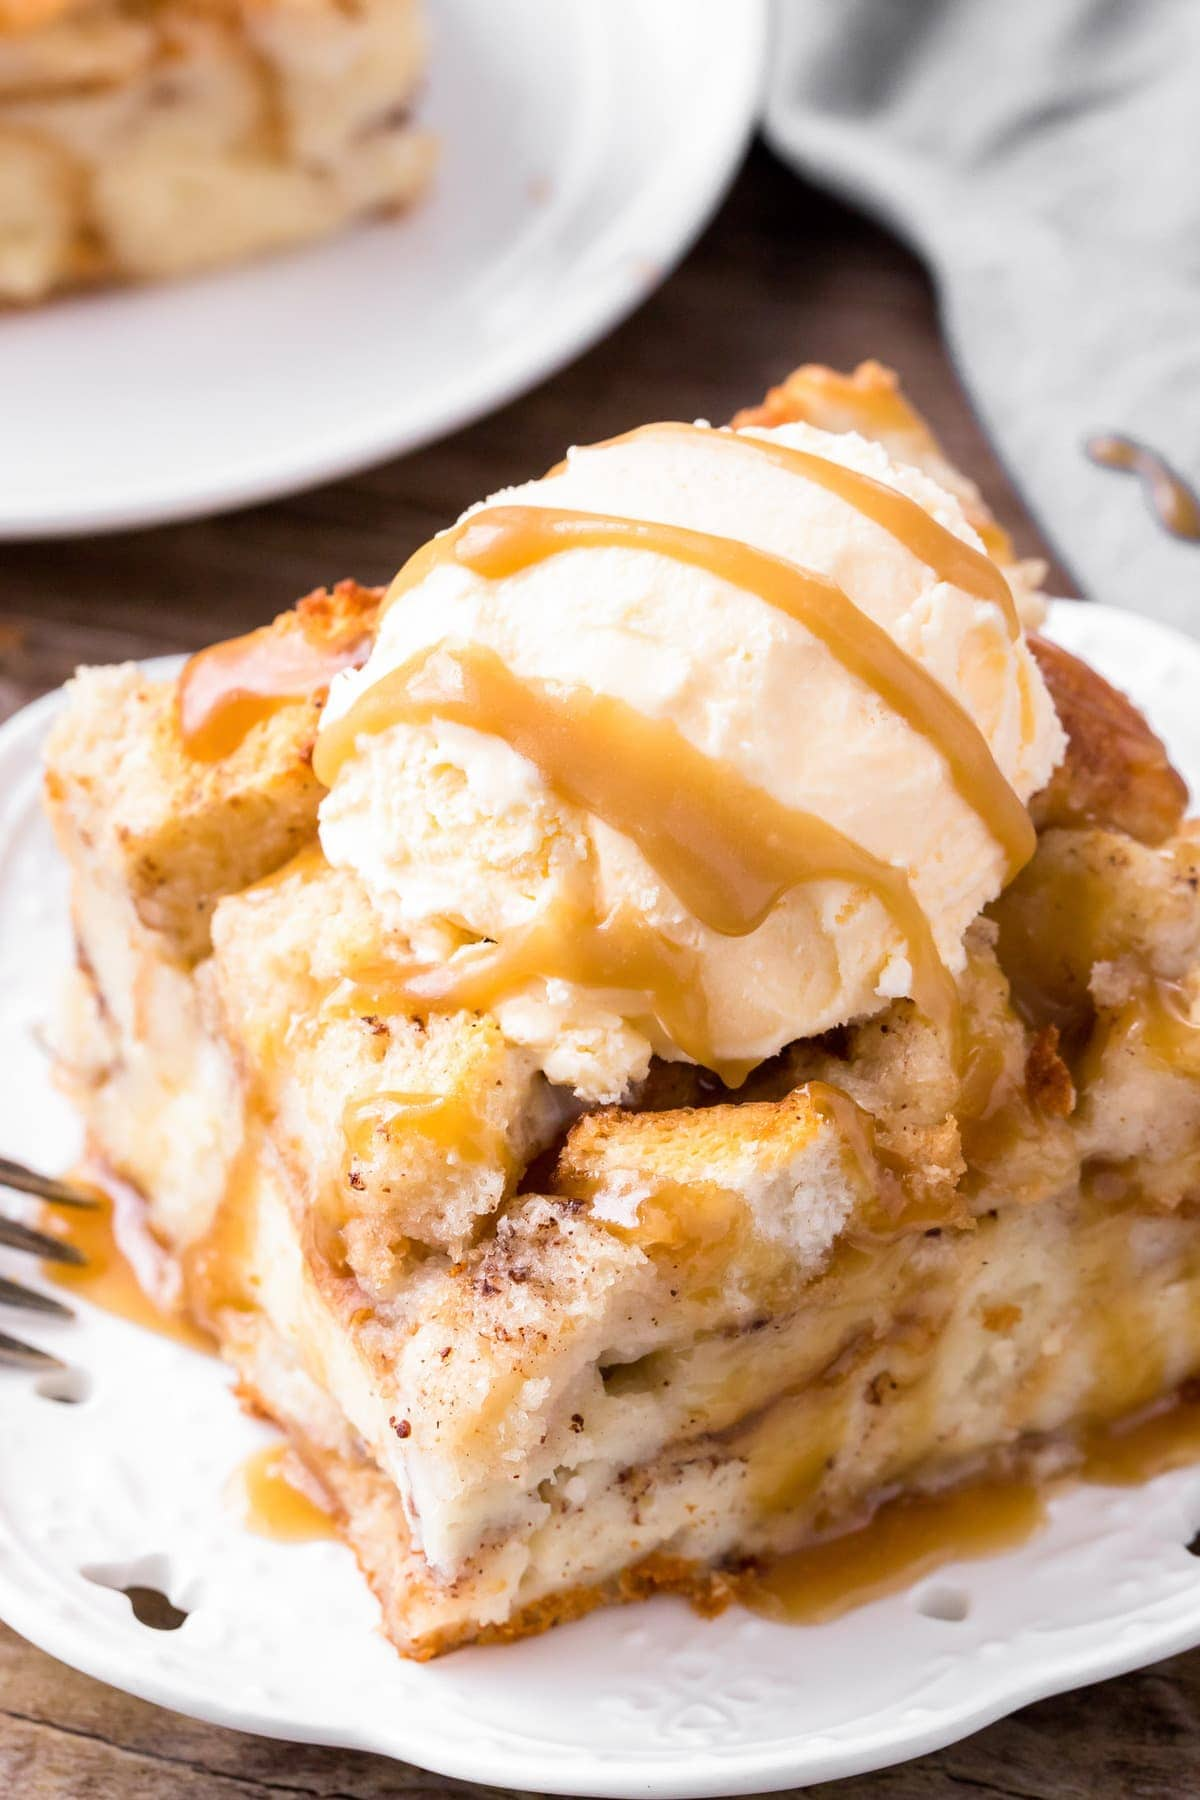 Easy bread pudding recipe on plate